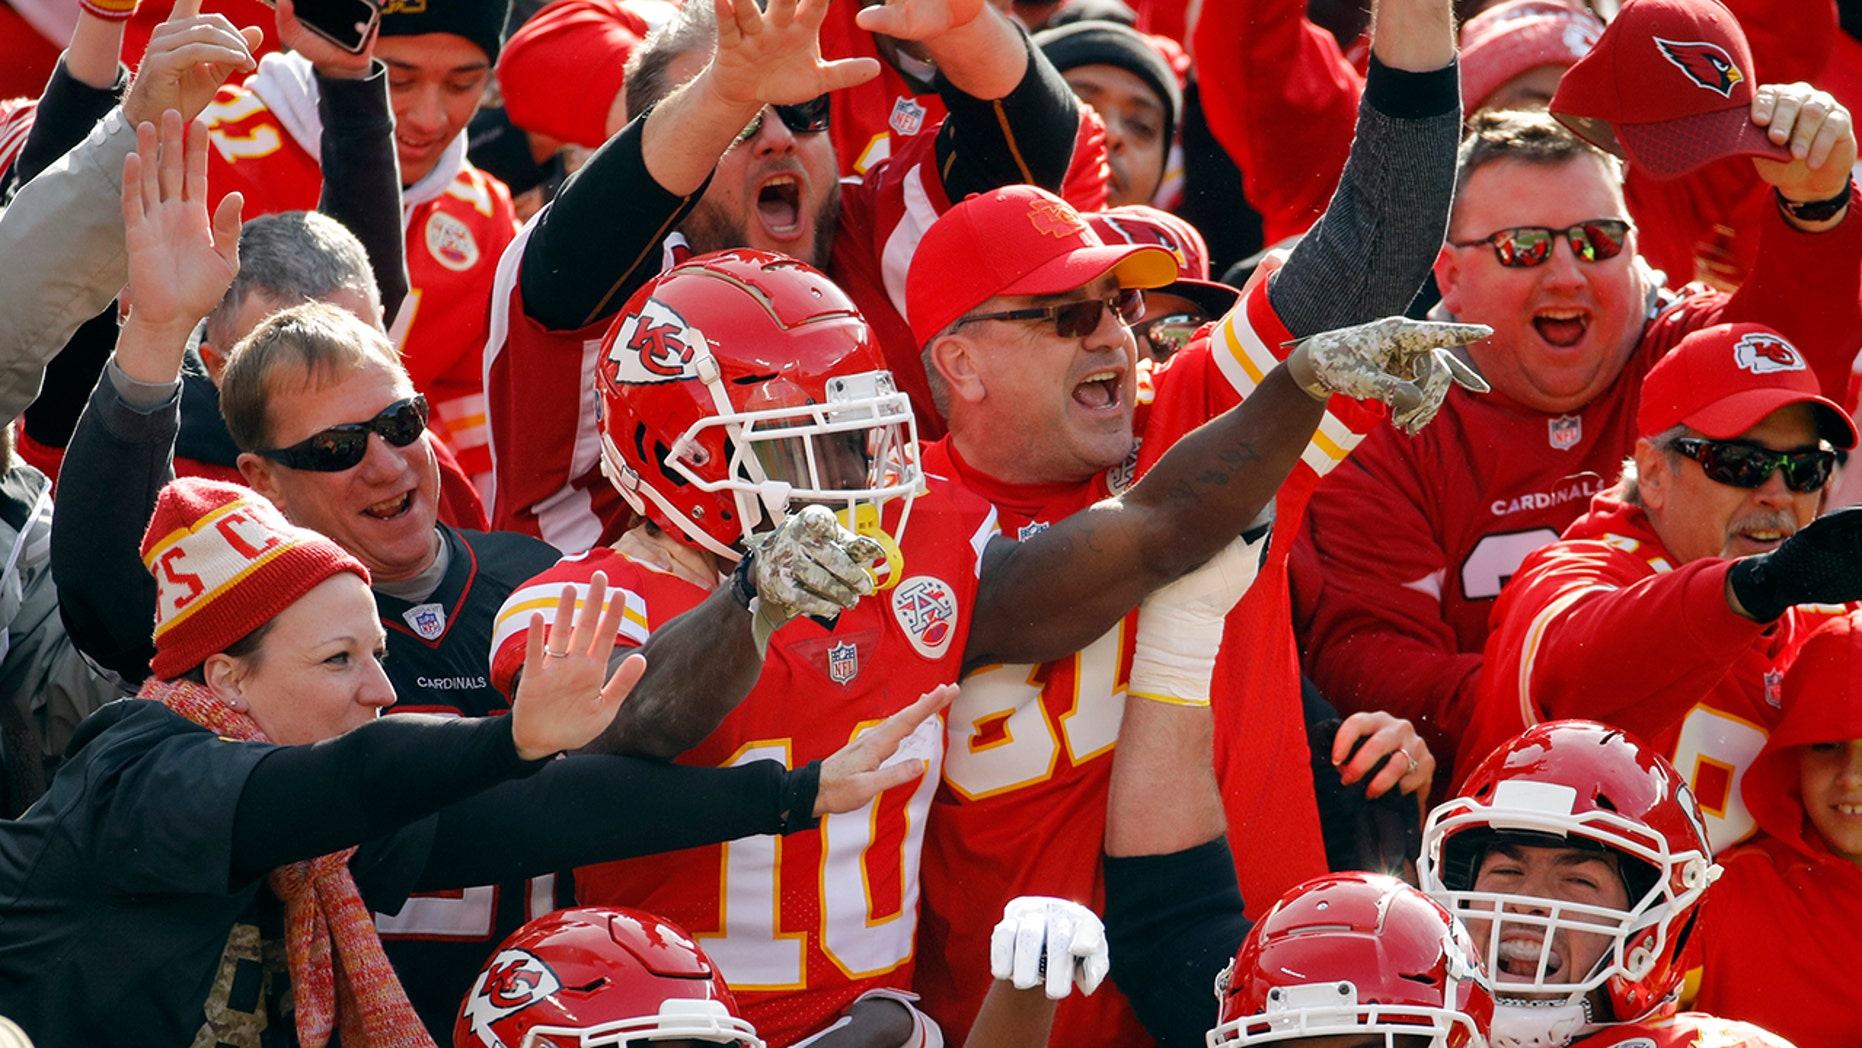 Kansas City Chiefs fans were upset over the NFL's decision to move their game with the Los Angeles Rams to Los Angeles from Mexico City.